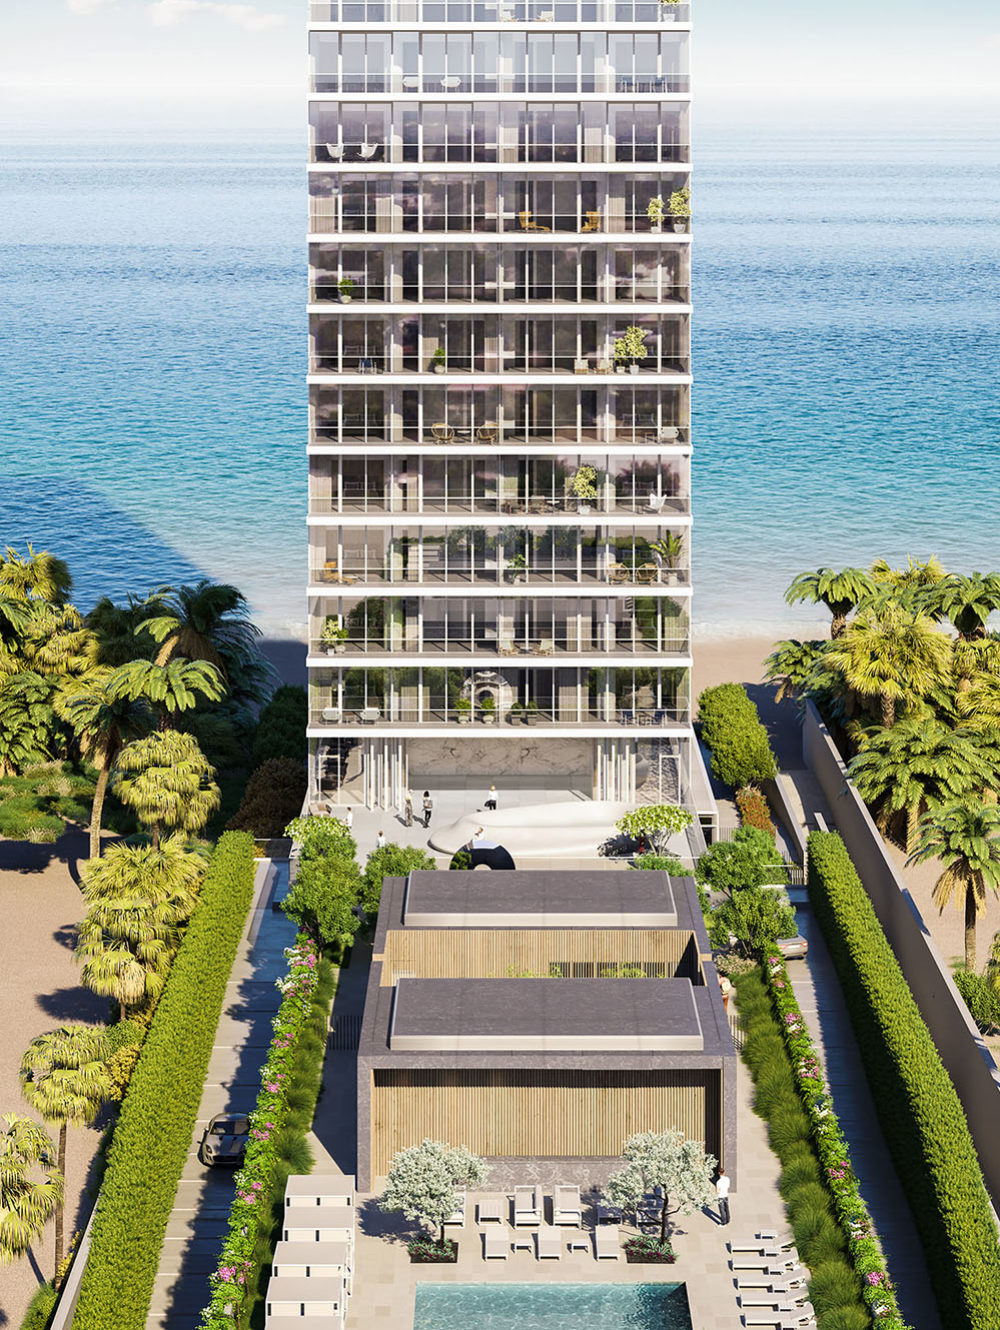 Exterior aerial view of 2000 Ocean condominium with a view of the ocean and pool located in Hallandale Beach, Florida.